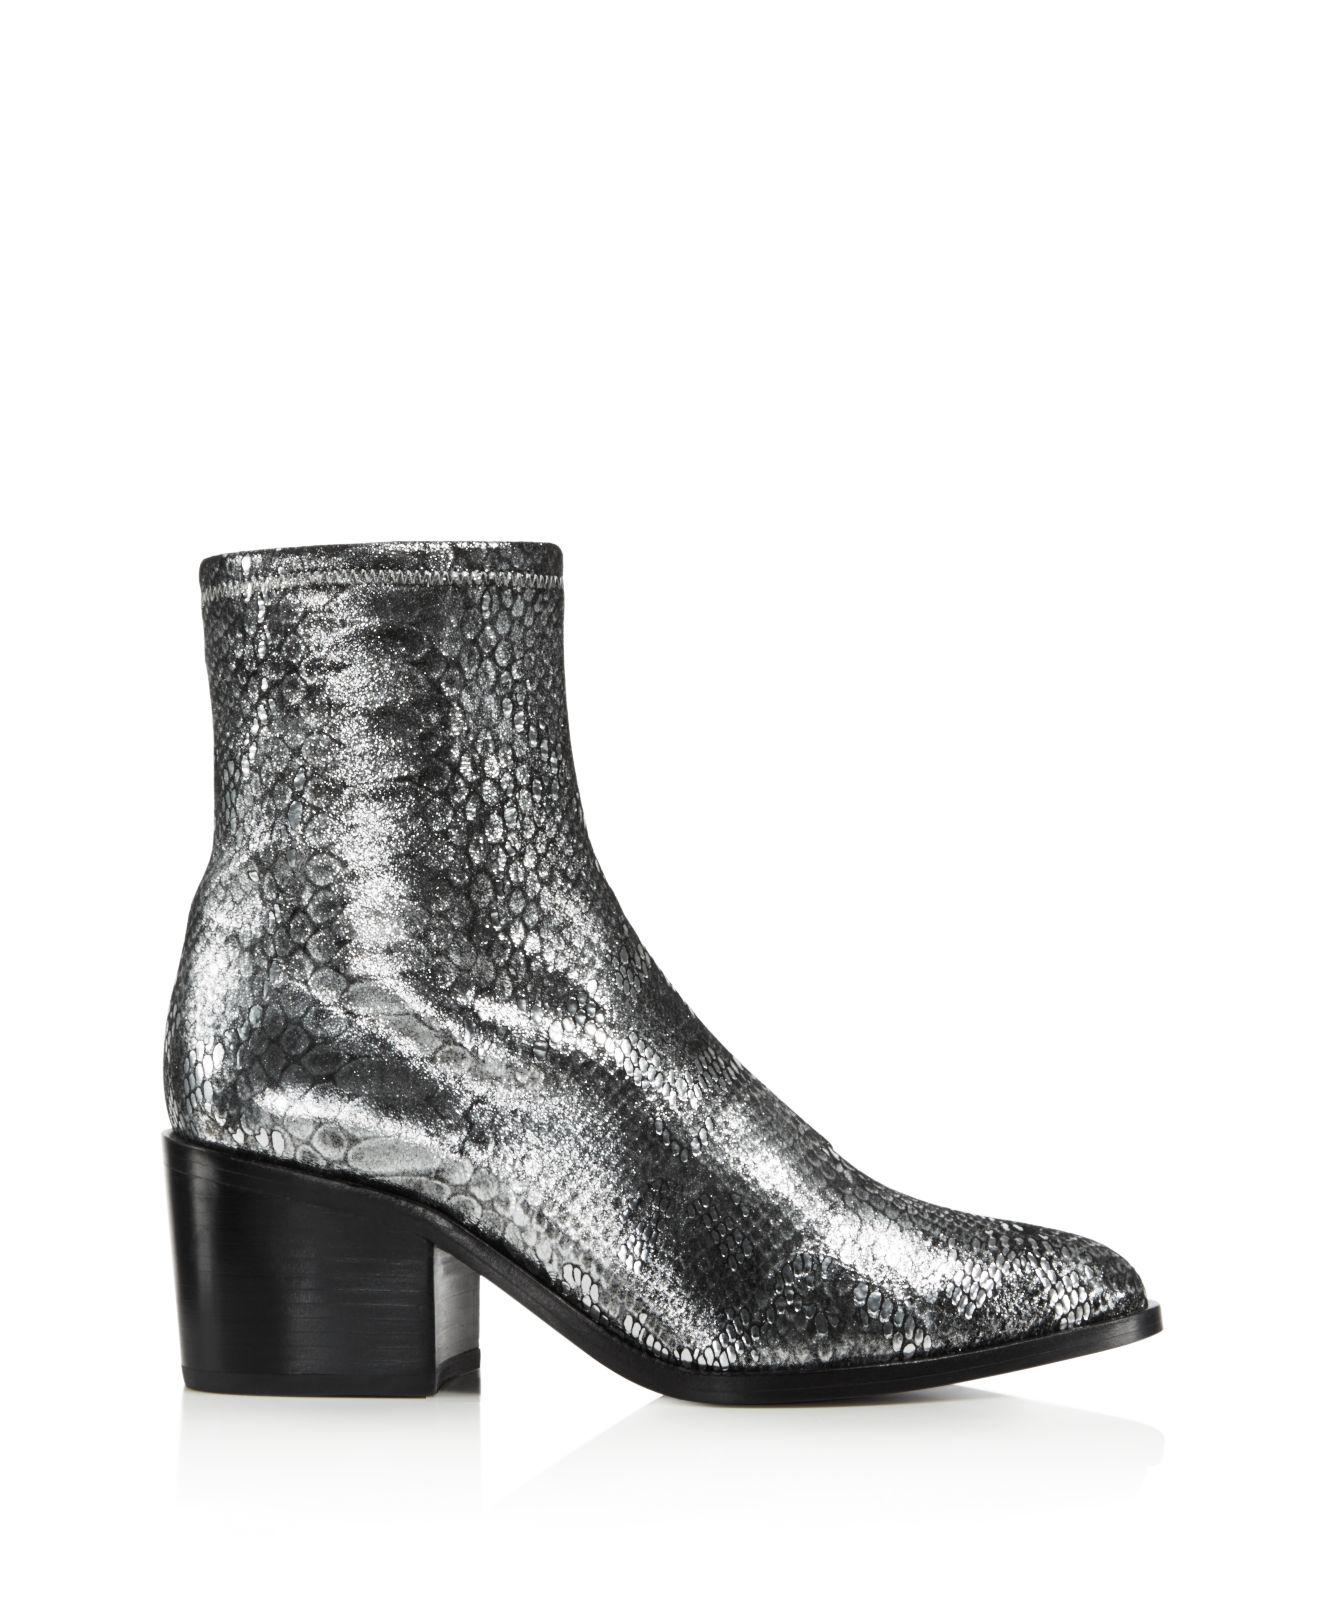 Opening Ceremony Women's Livv Metallic Snake-Embossed Leather Booties KiA93aWf